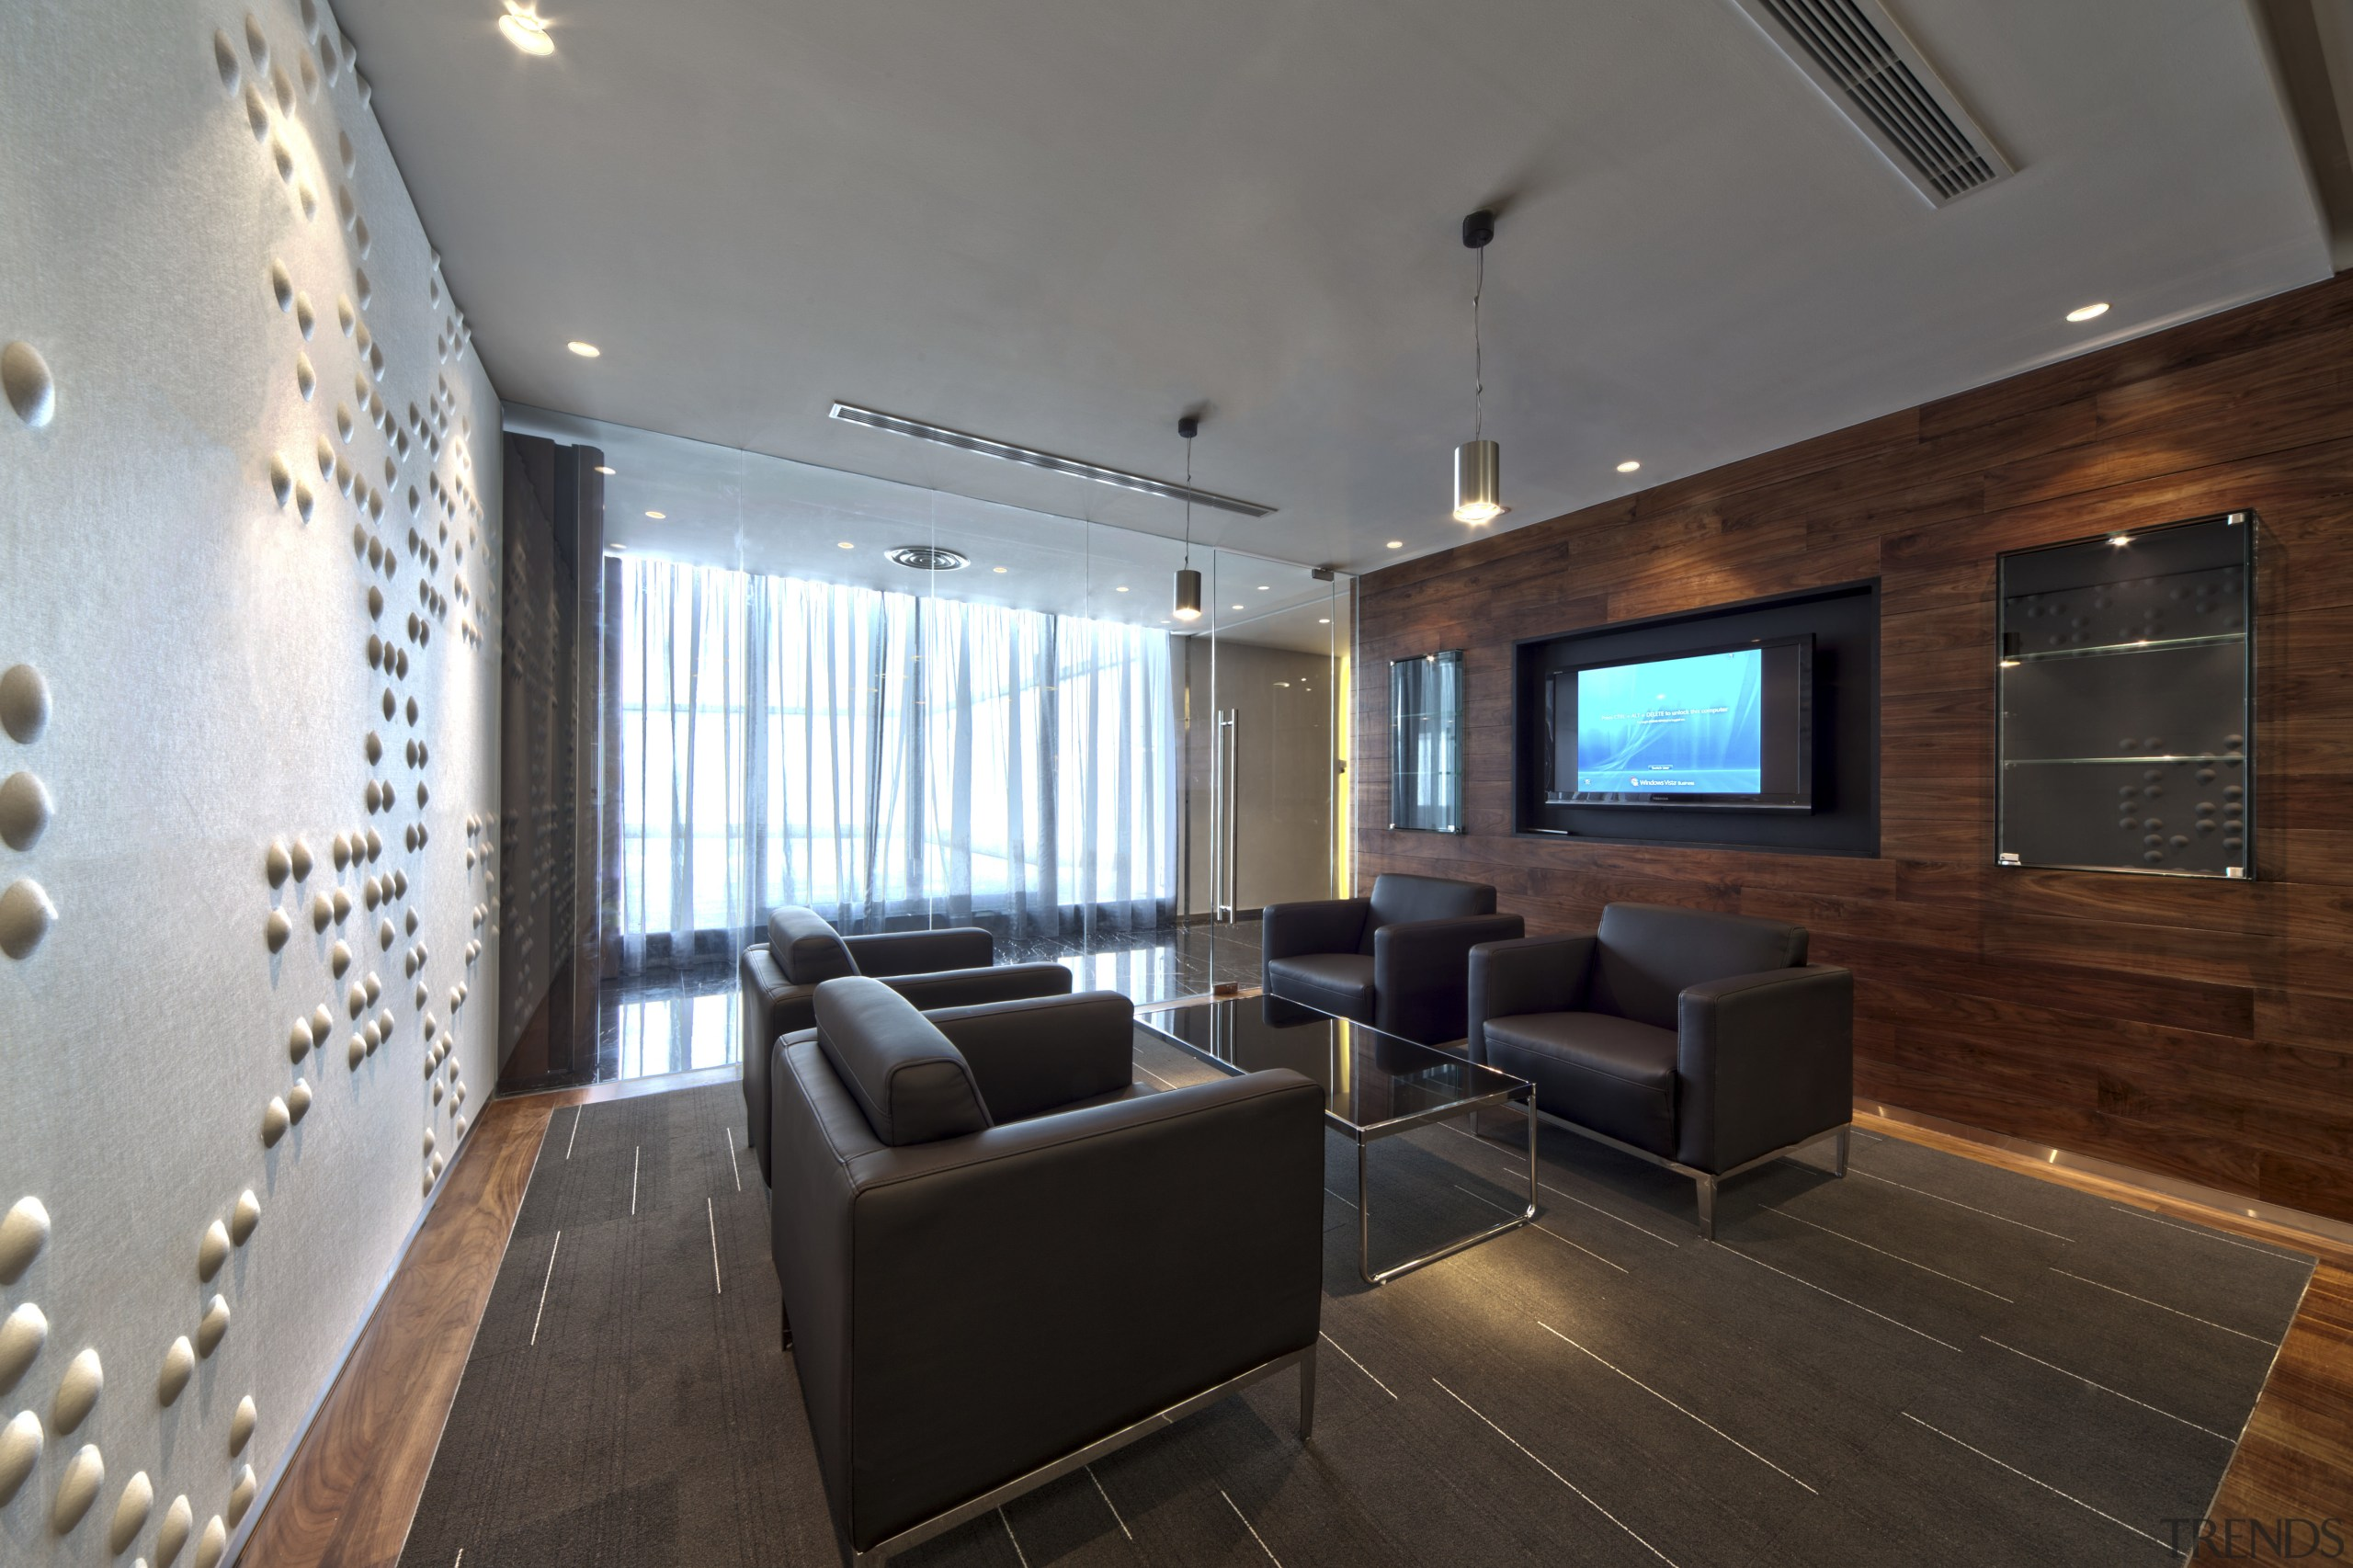 Contemporary offices of  the Real Estate Developer's architecture, ceiling, interior design, living room, lobby, real estate, room, gray, black